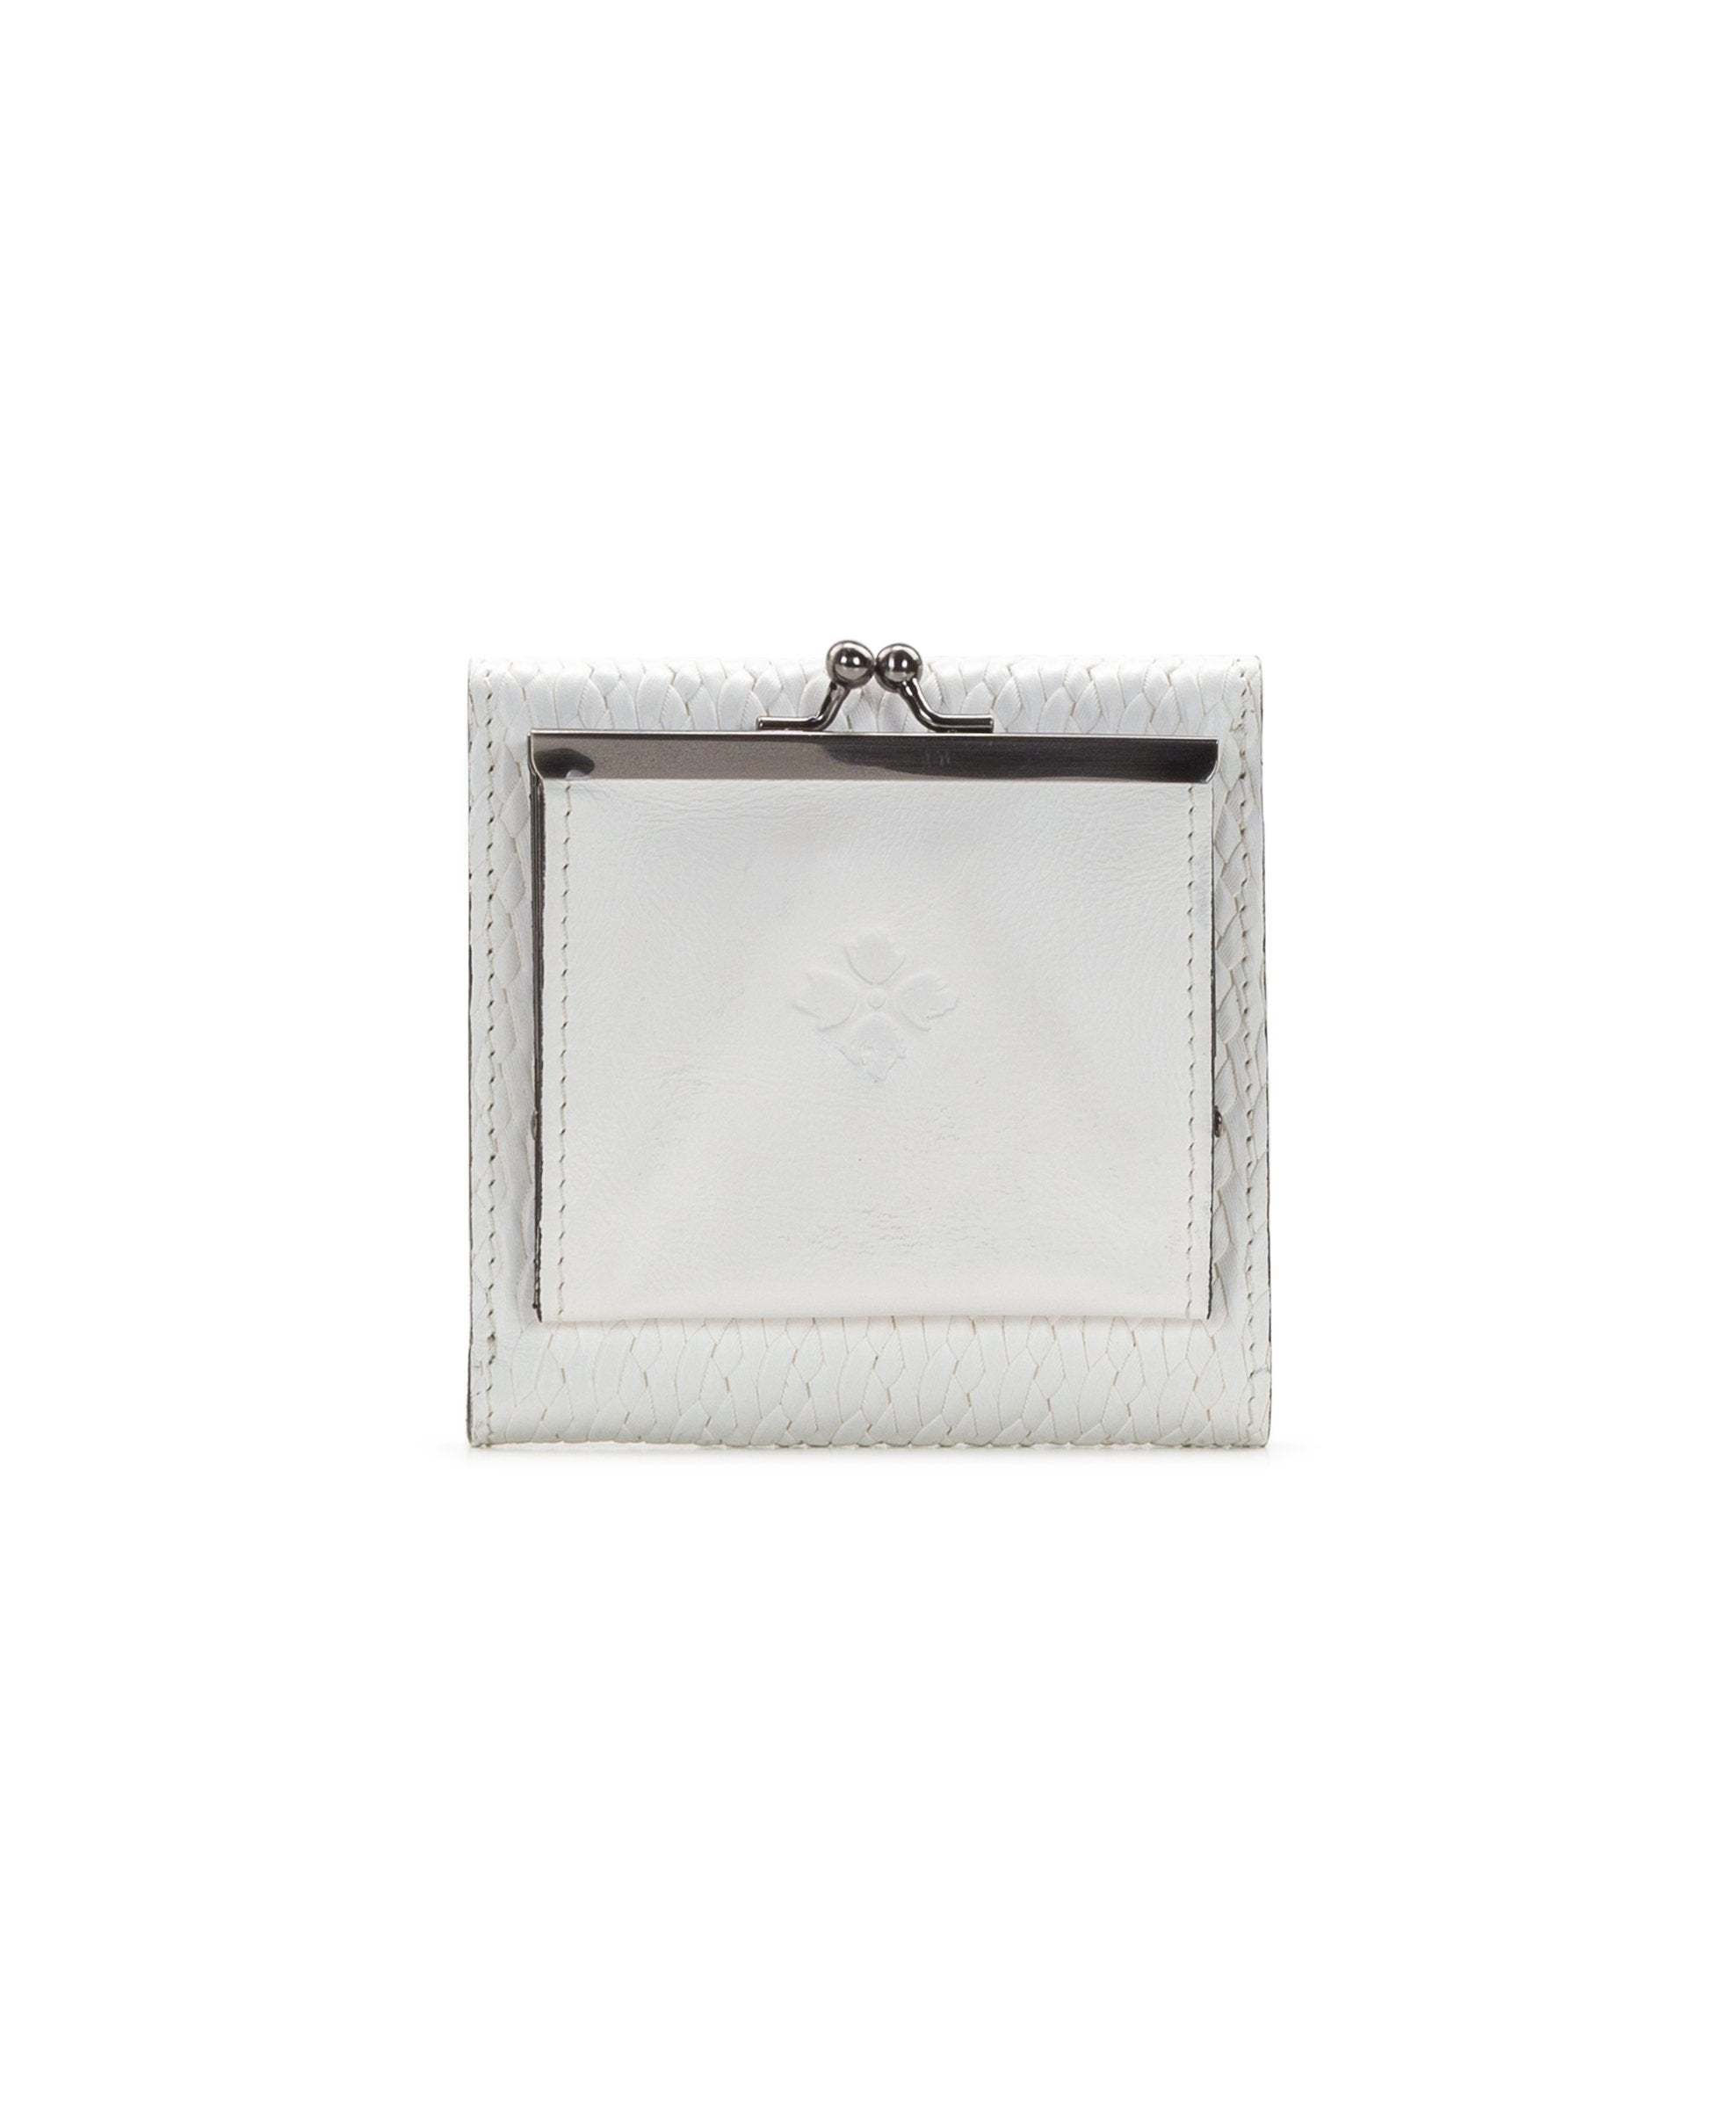 Reiti Bi Fold Wallet - Twisted Woven Embossed 2